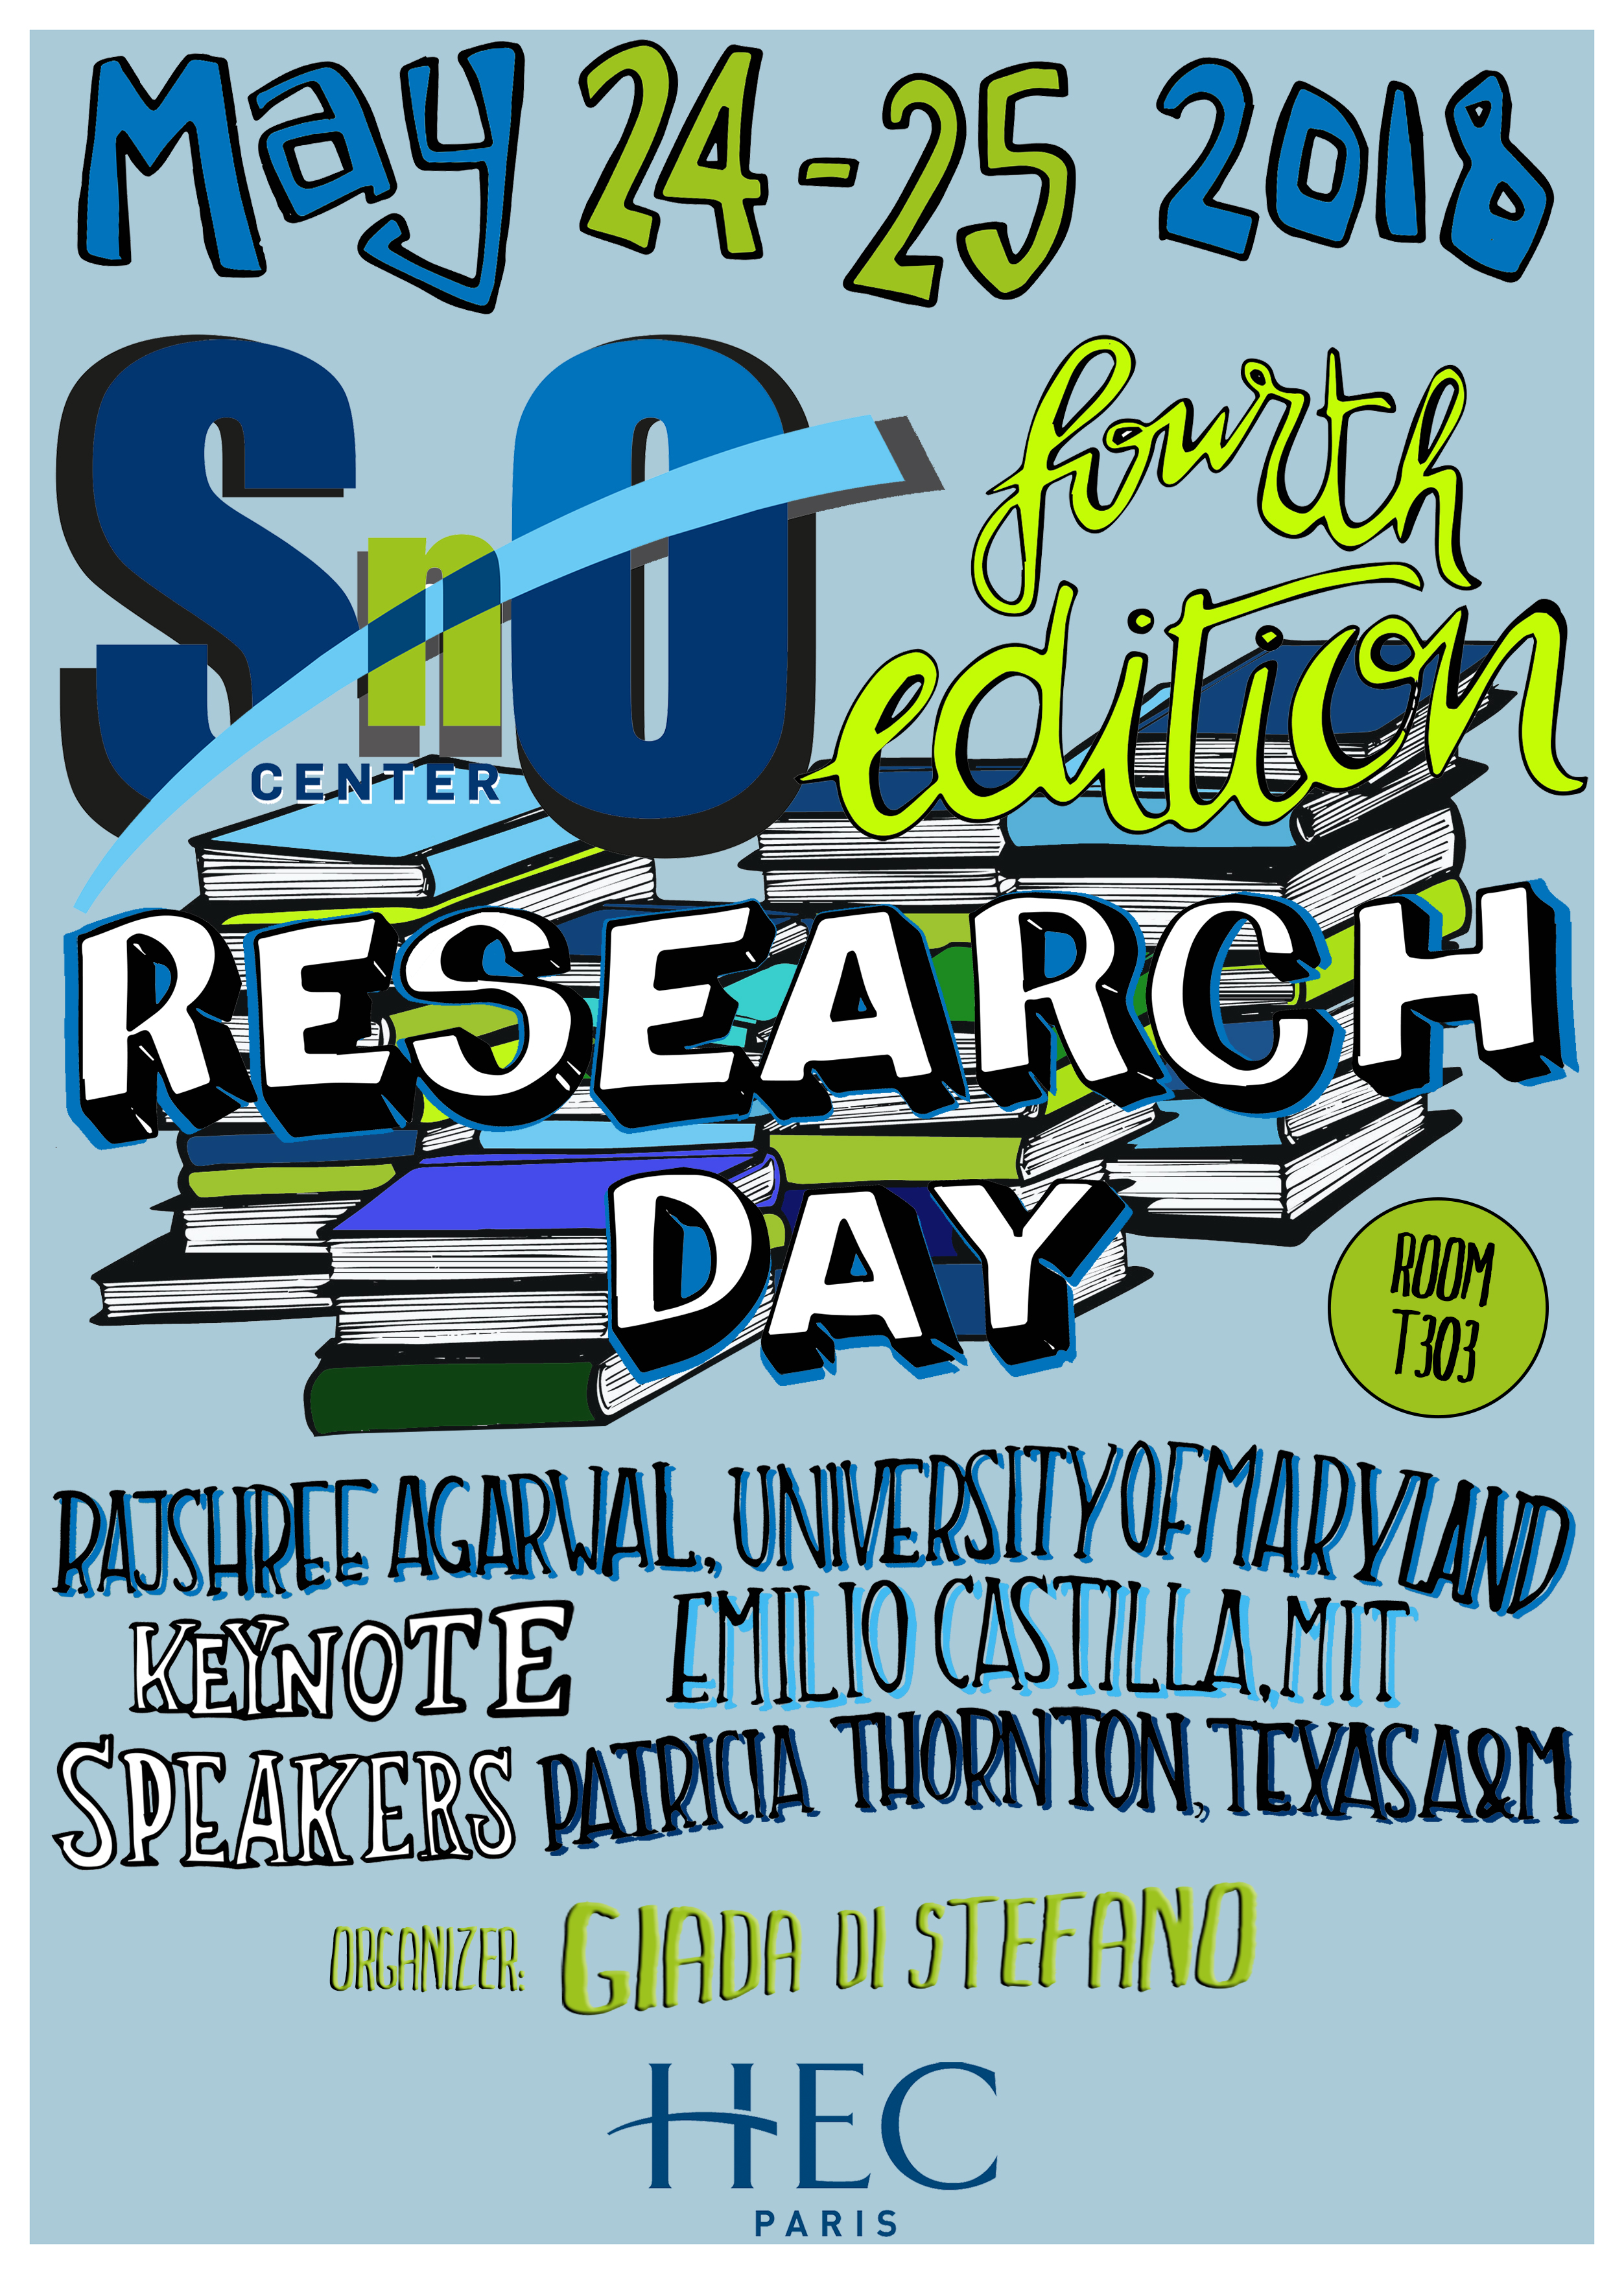 Join us for the SnO Research Day!